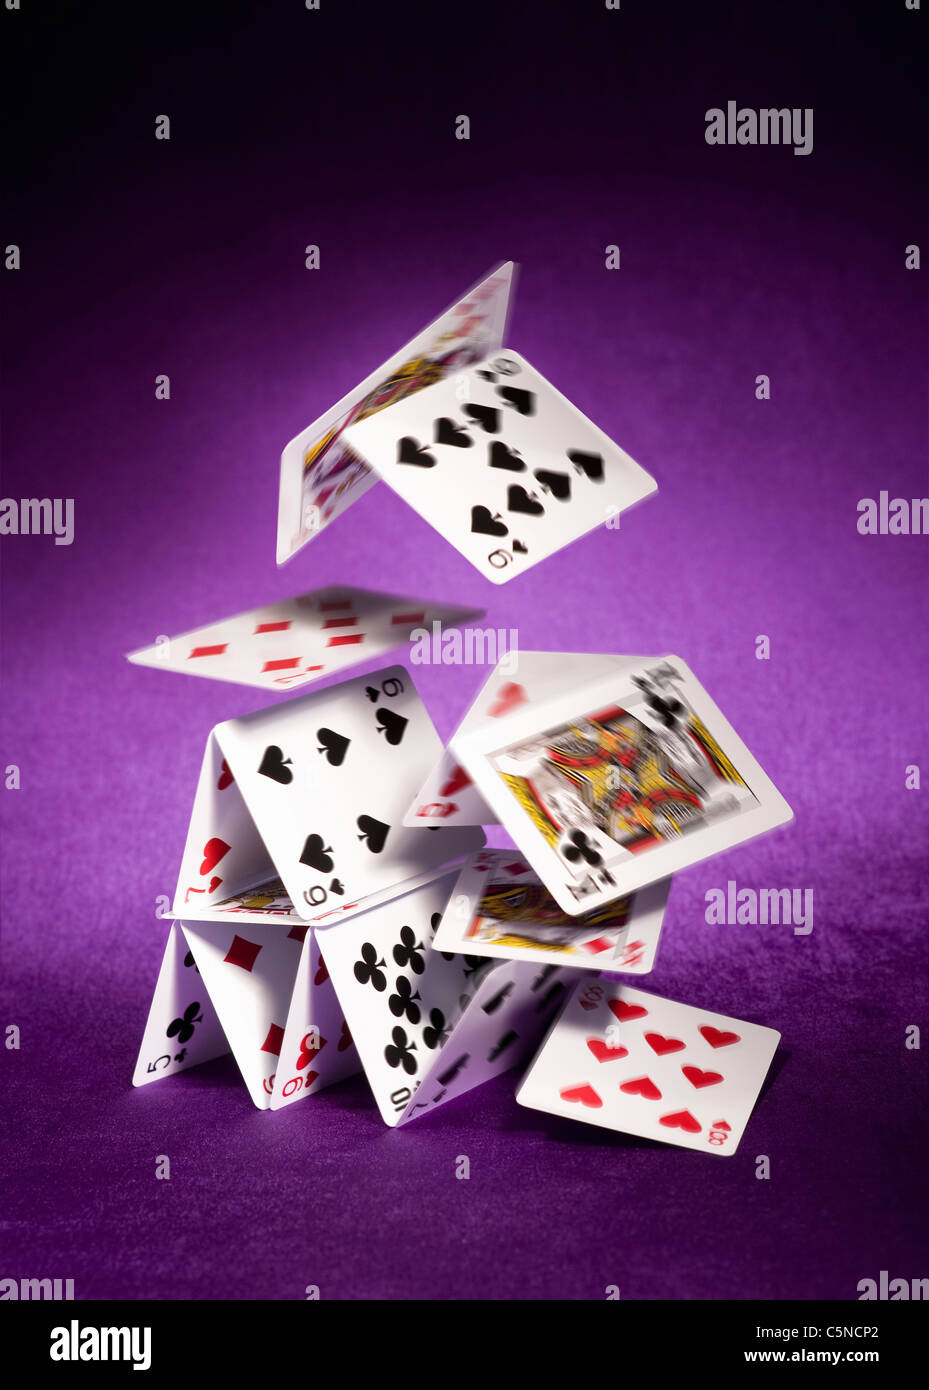 A house of cards falling down - Stock Image